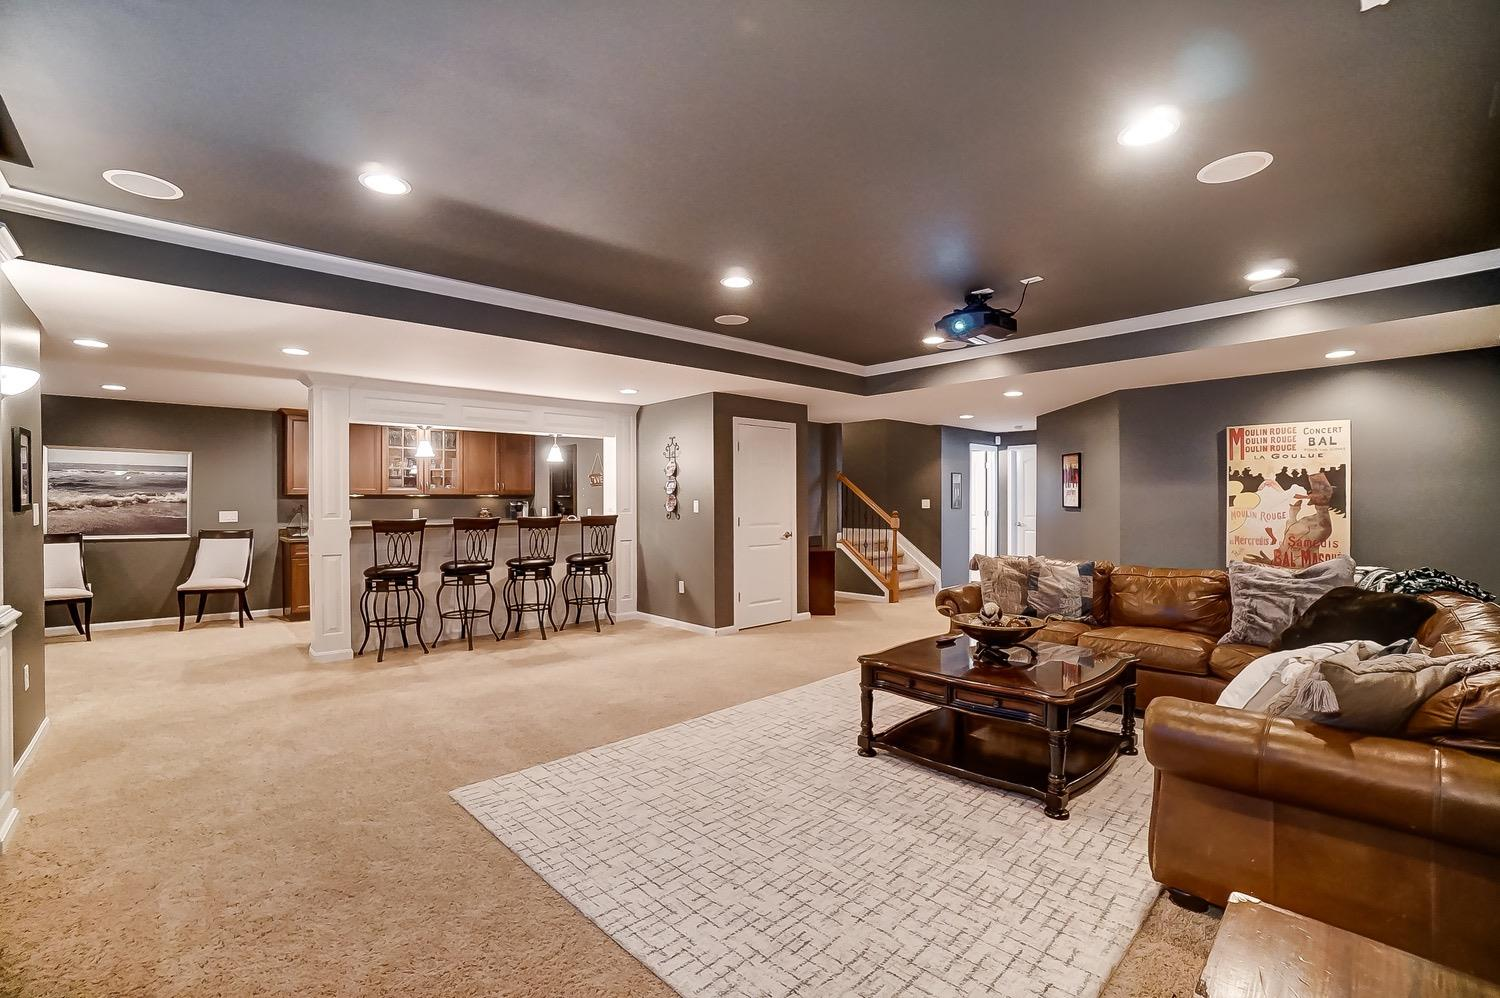 Surround sound speakers in ceiling in theater area.